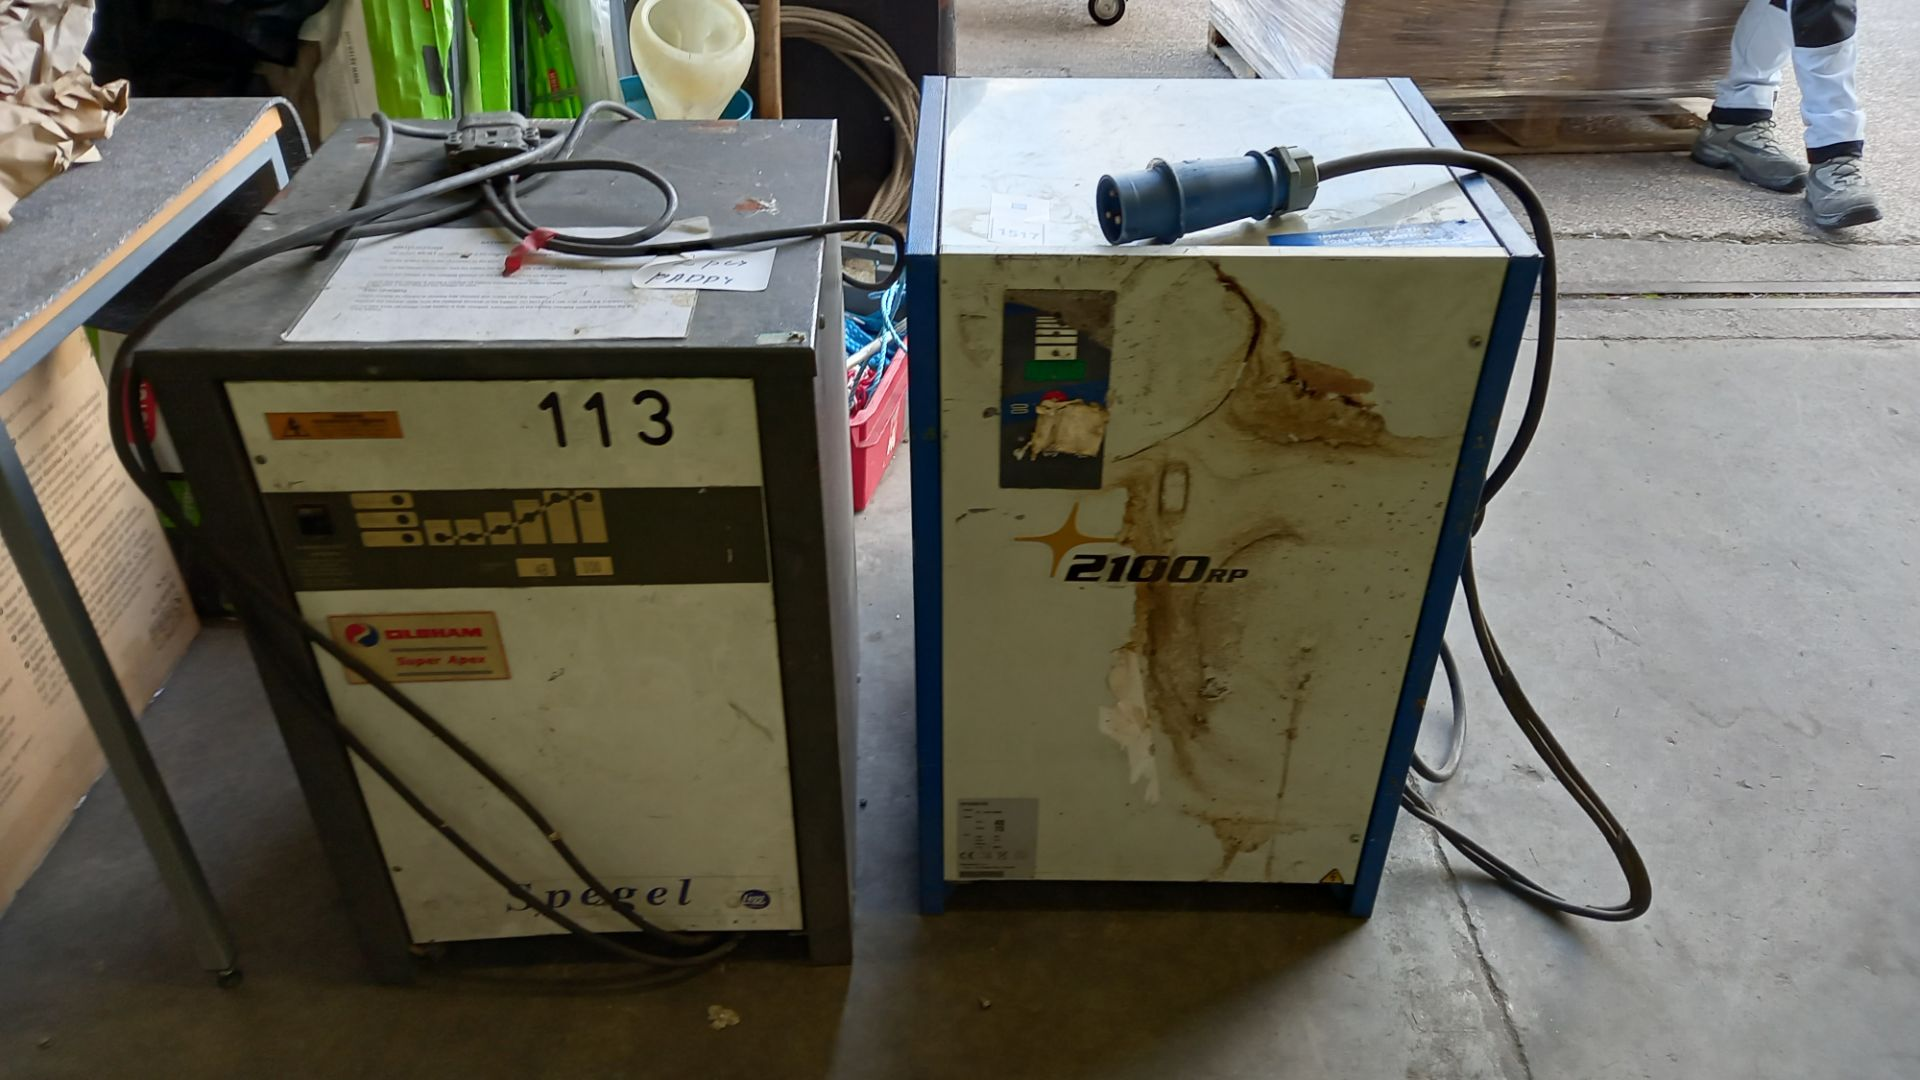 2 PIECE LOT CONTAINIING 1 X OLOHAM SUPER APEX FORKLIFT CHARGER AND 1 X 2100RP FORKLIFT CHARGER